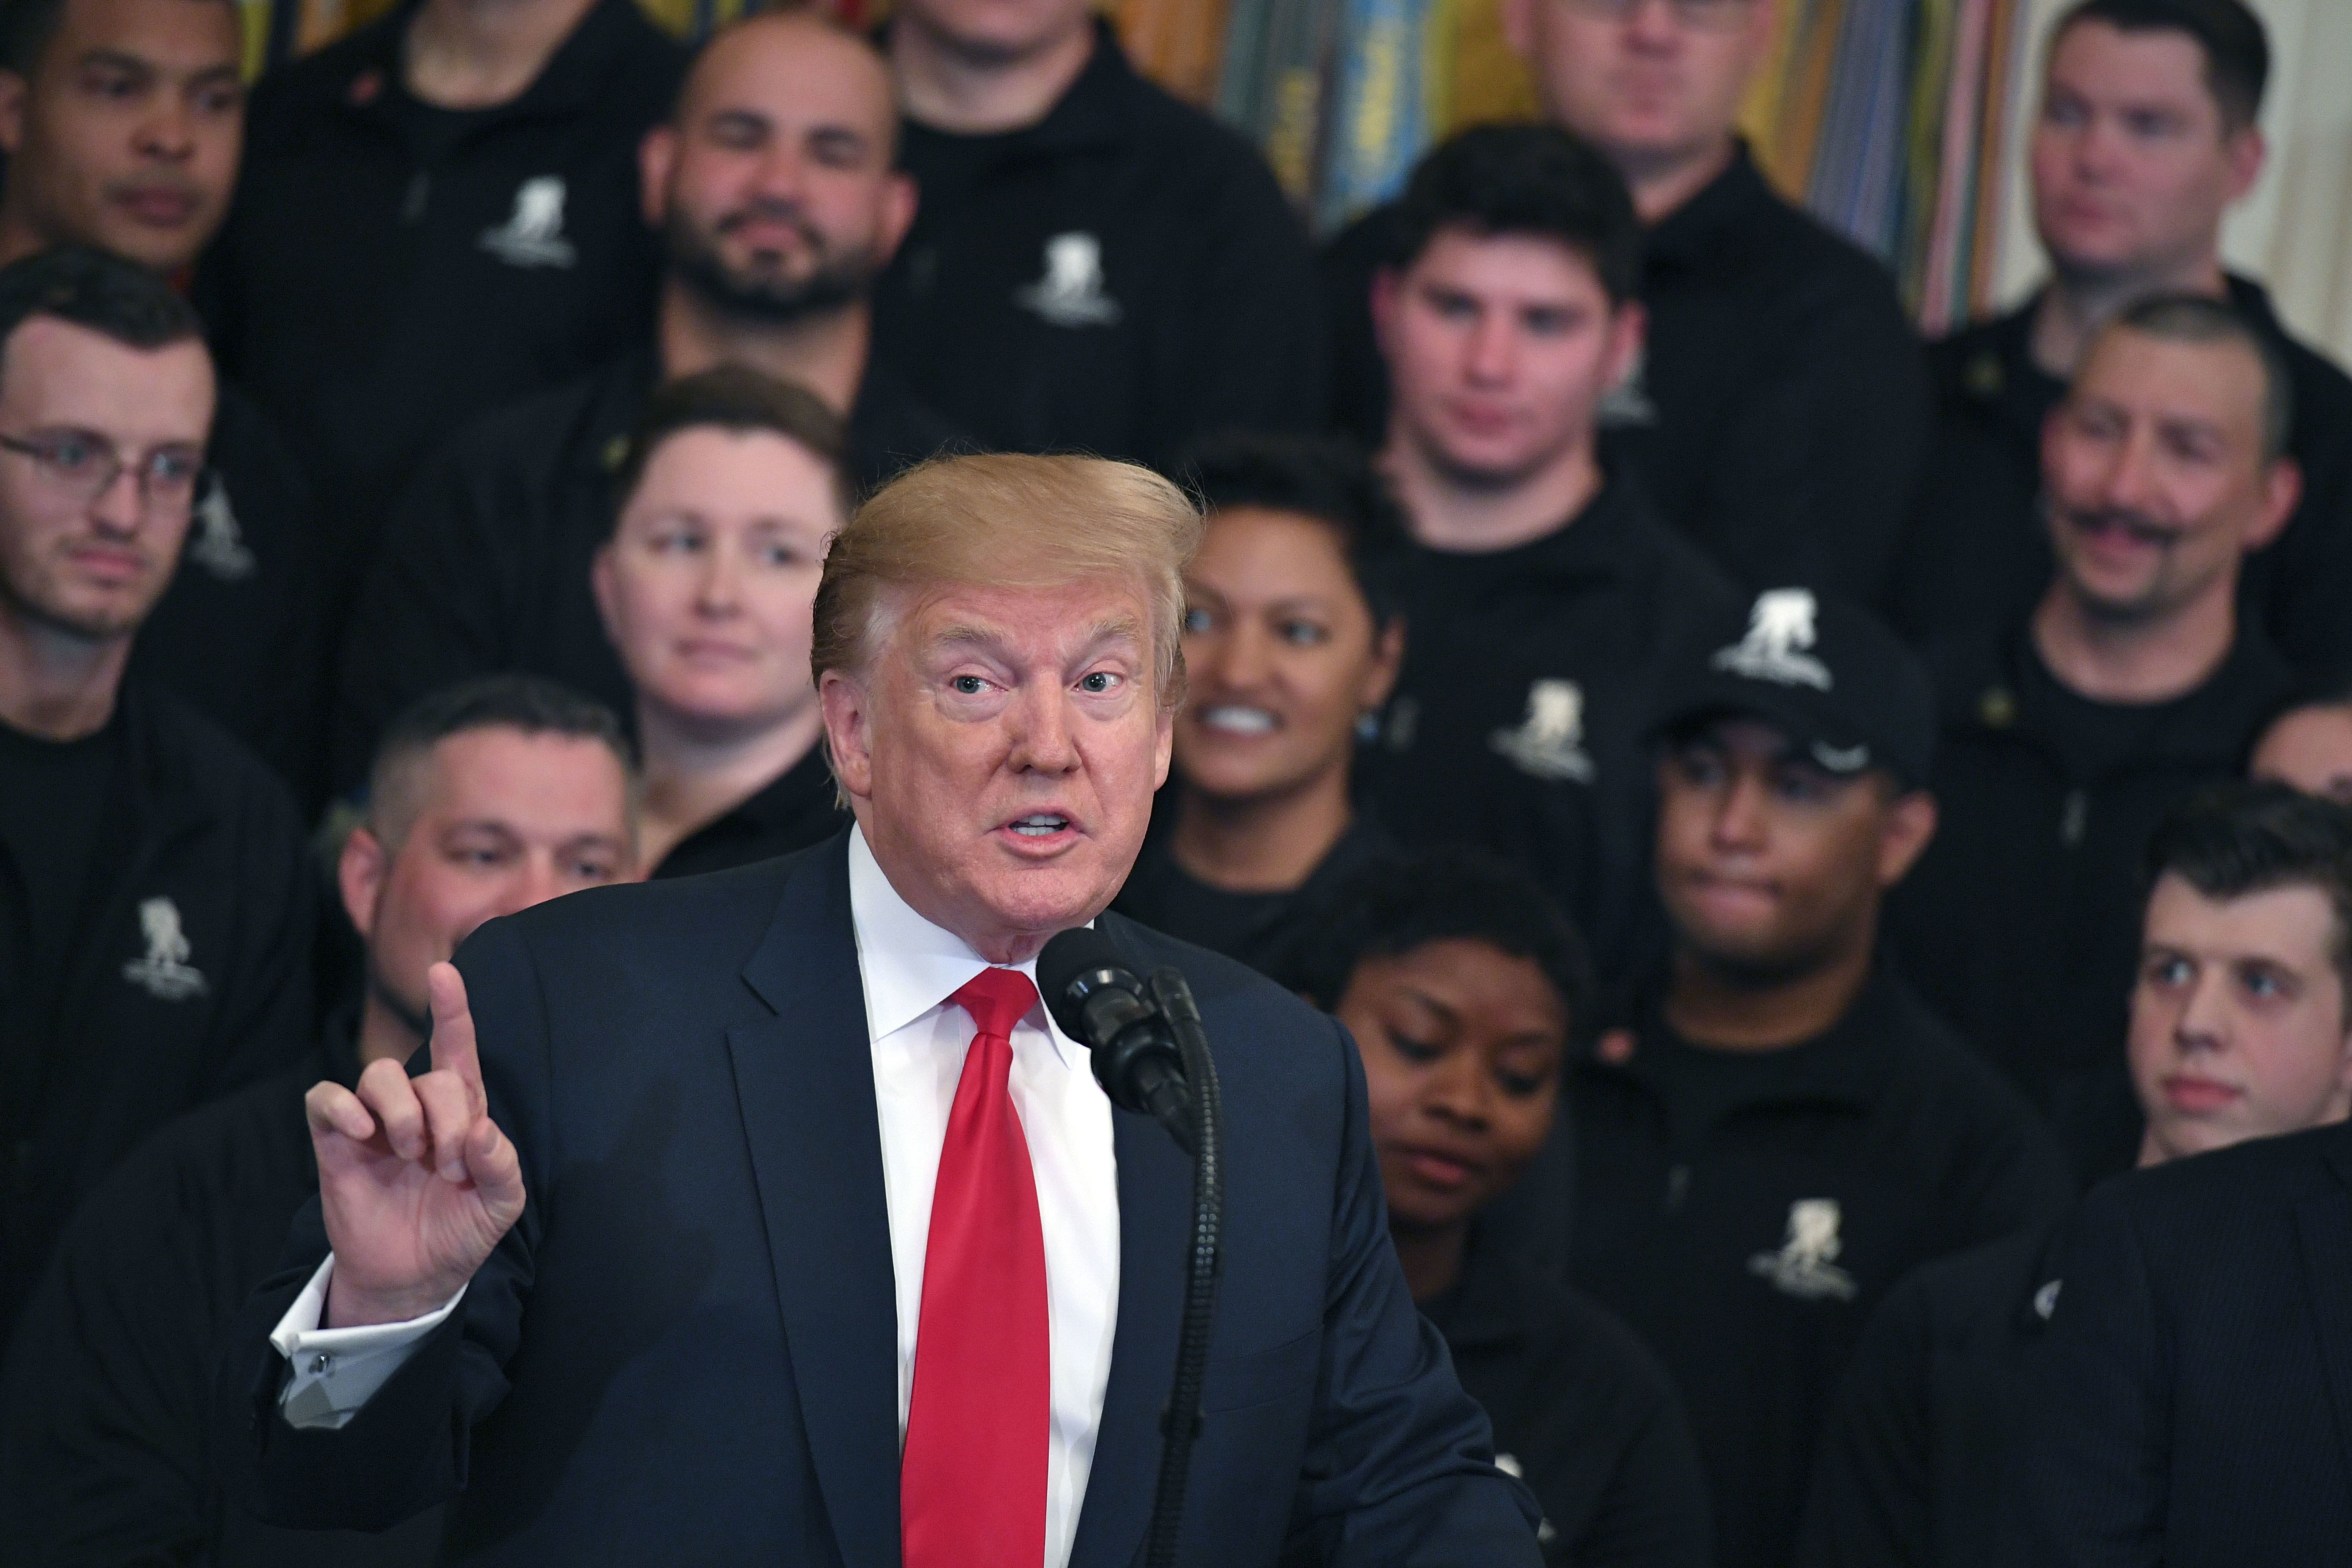 A 10% stock drop needed before Trump changes harsh trade tone